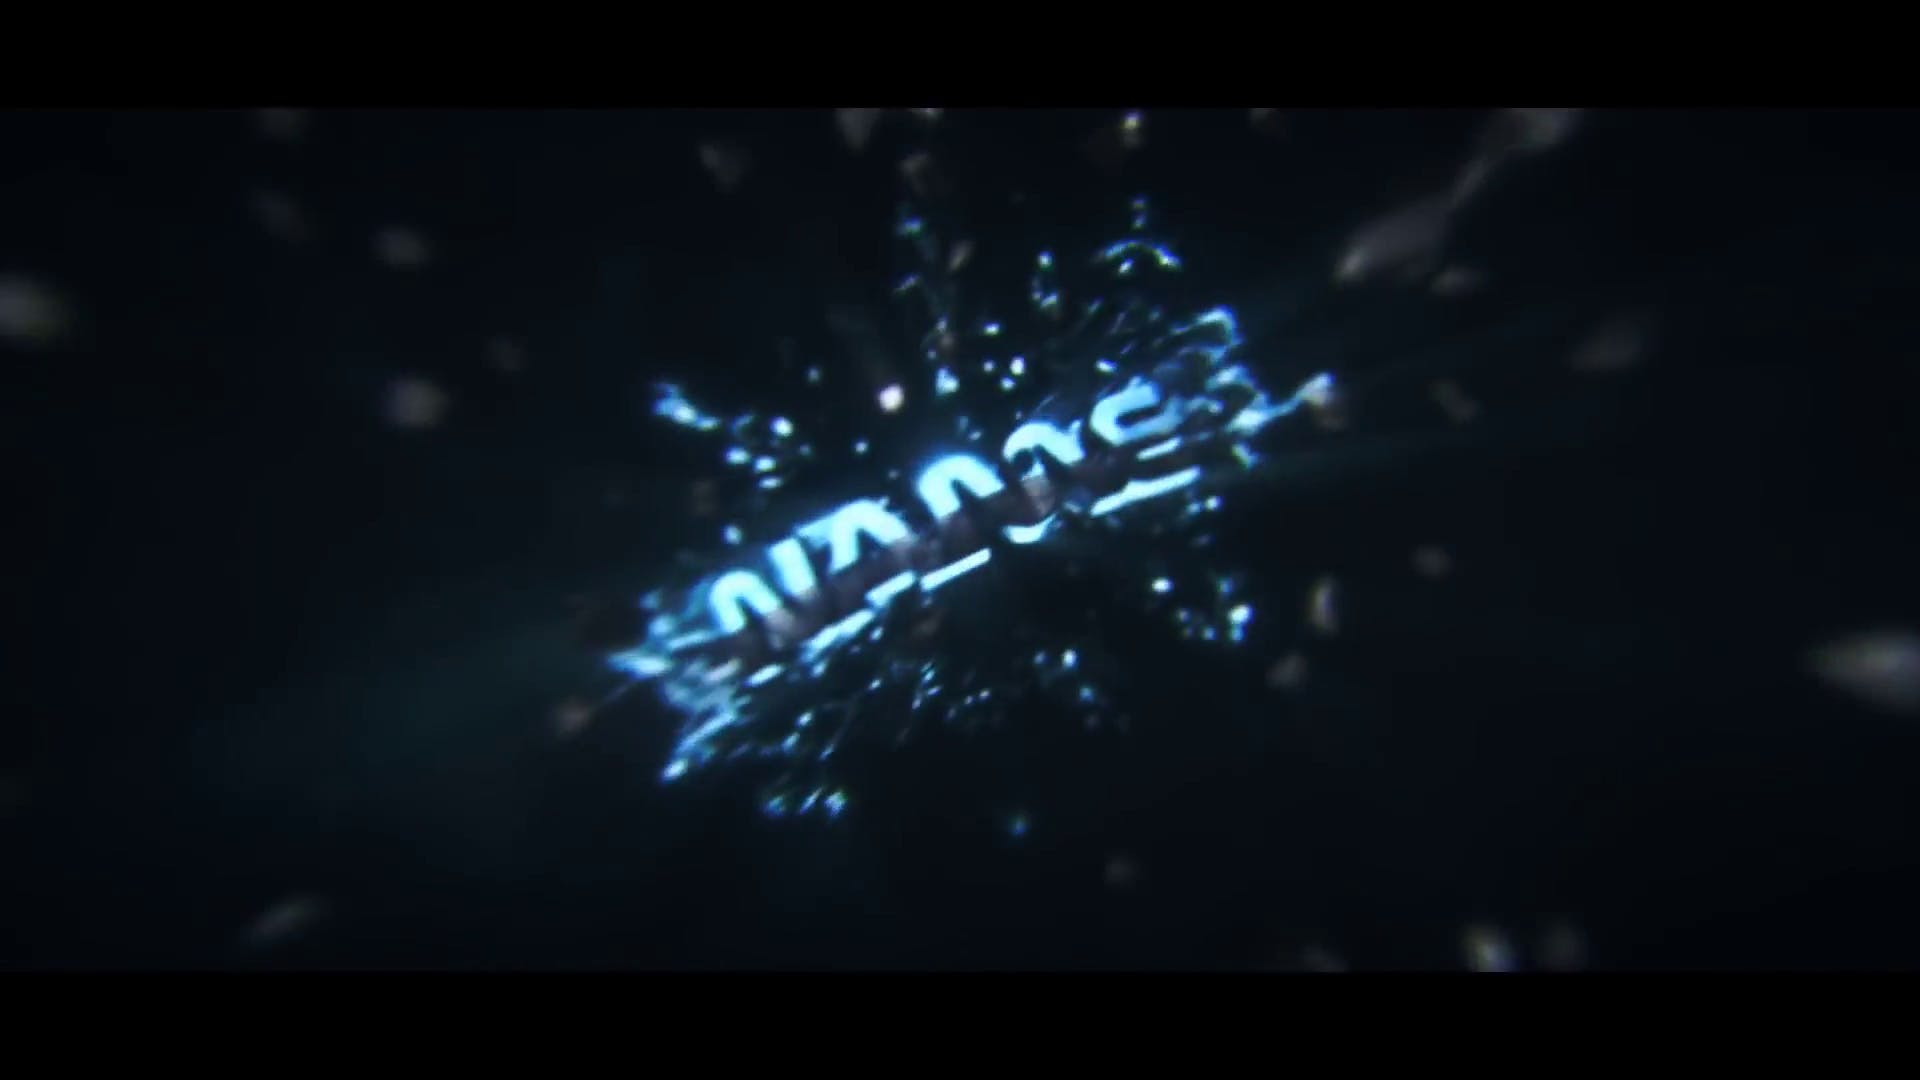 Fracture Particles Cinema 4D After Effects Intro Template FREE DOWNLOAD